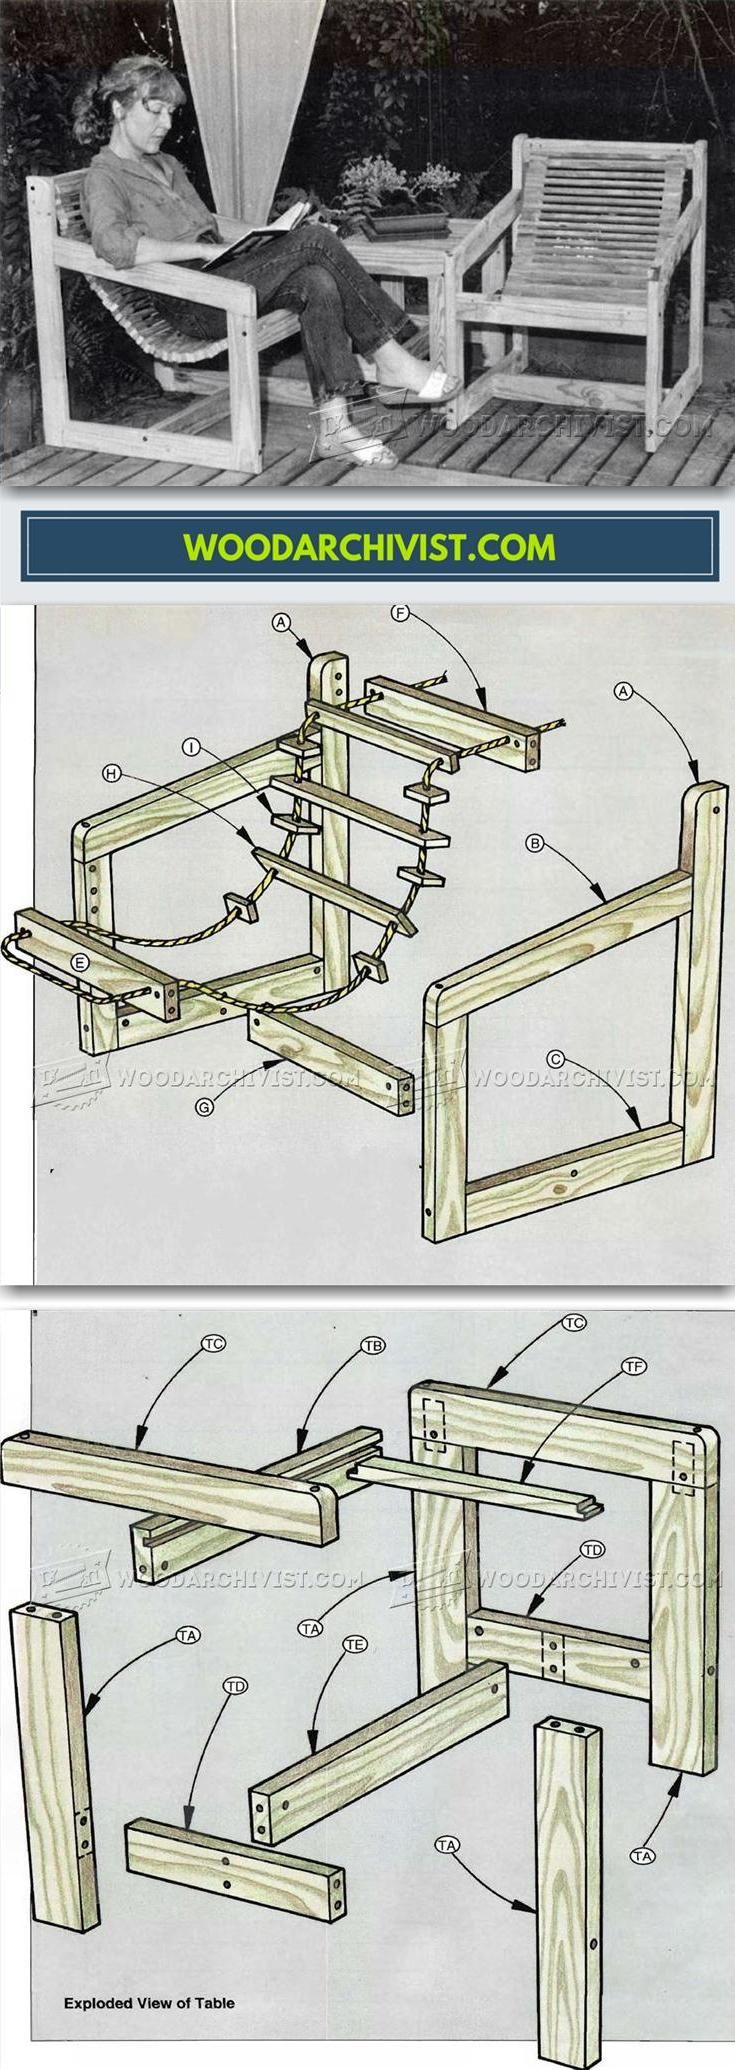 Best 700+ DIY-Pläne images on Pinterest | Wood projects, Woodworking ...